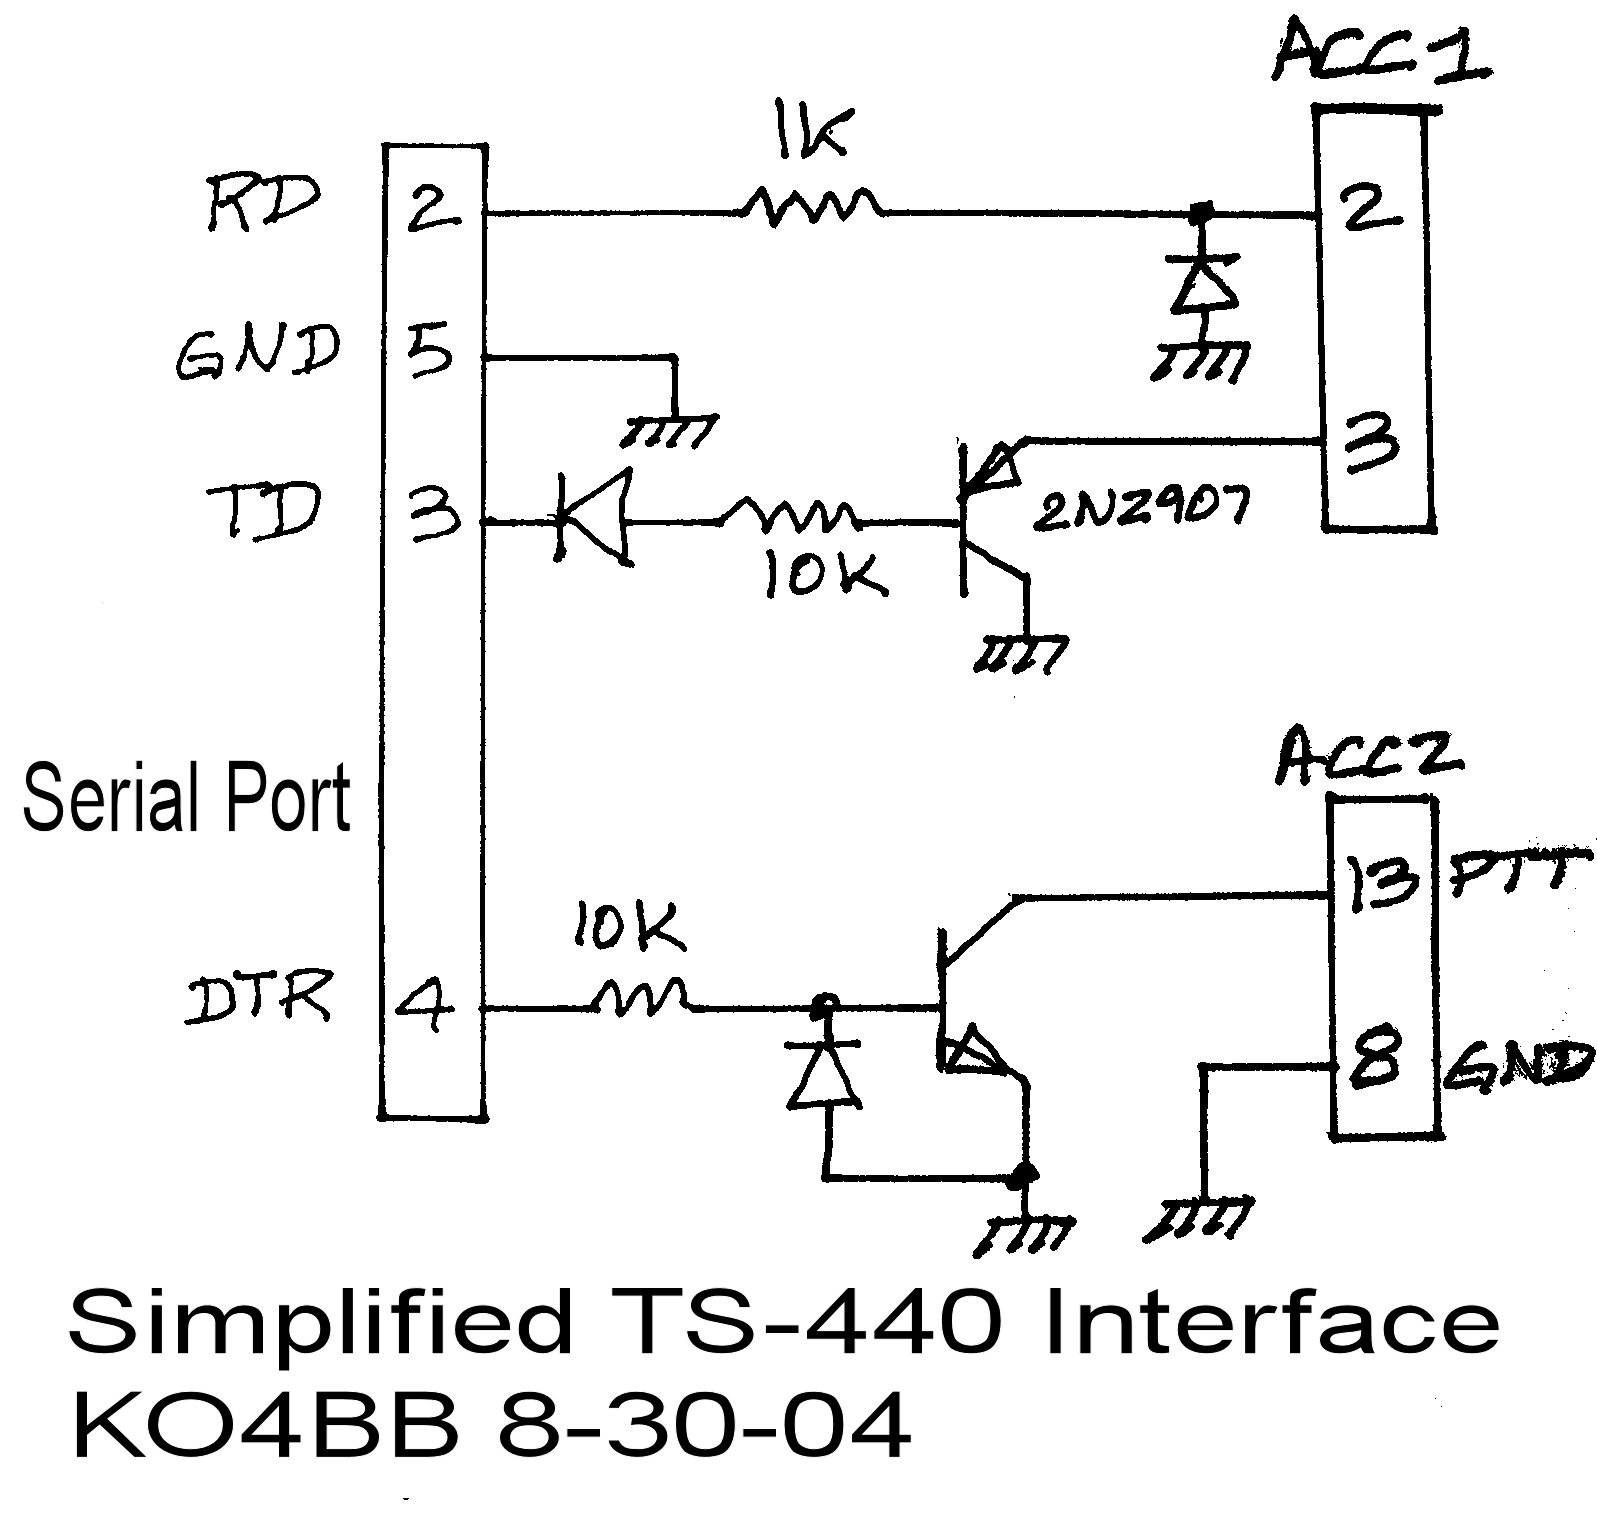 TS 440_Interface_simple ko4bb's ts 440 interface  at crackthecode.co